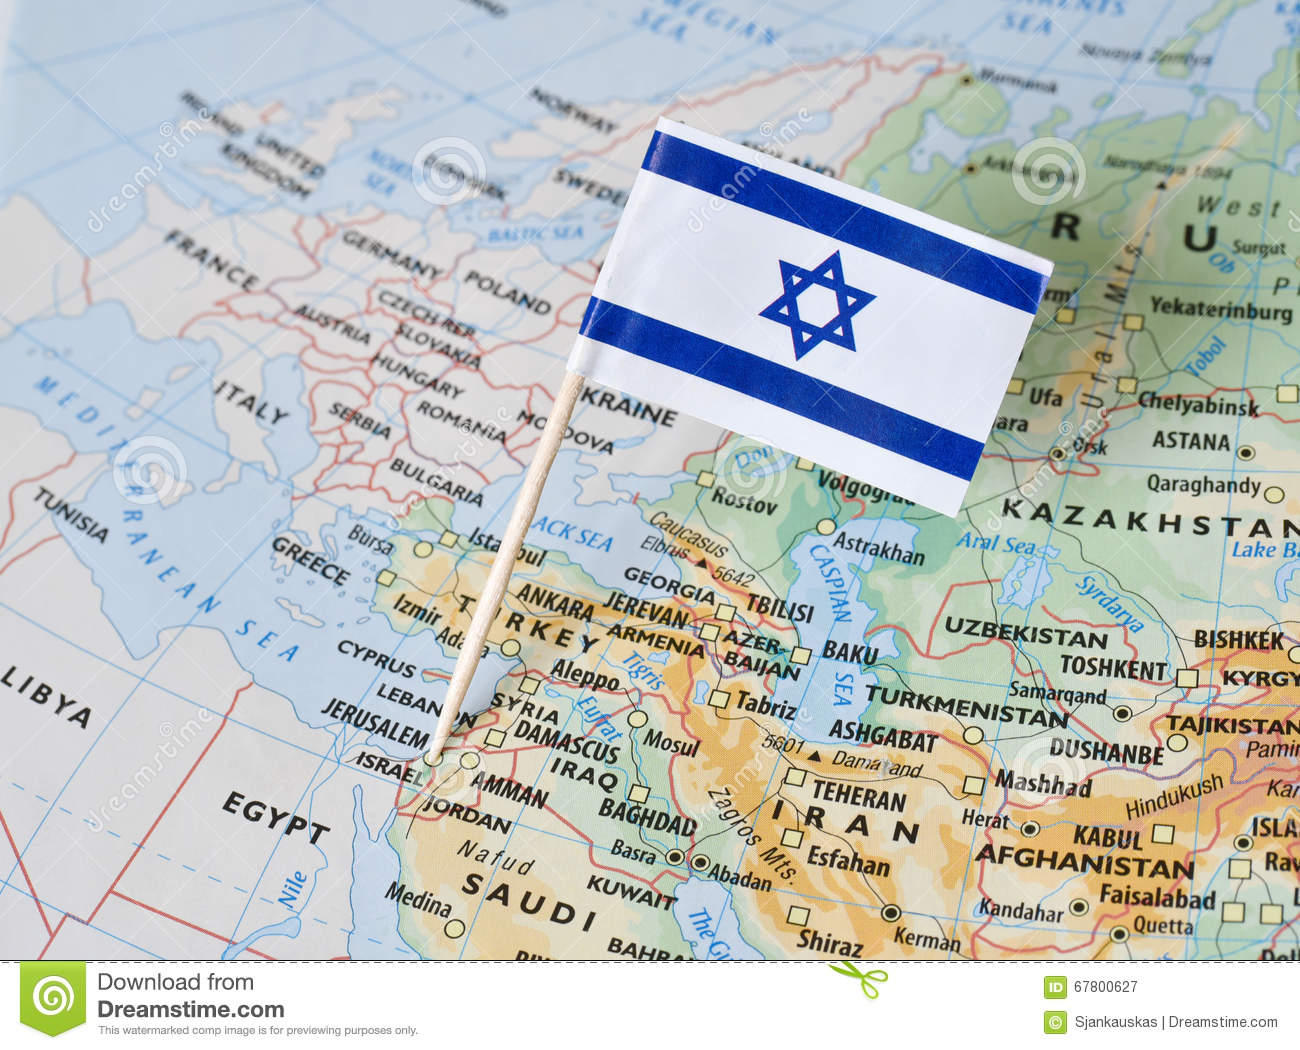 Israel flag pin on map stock image. Image of destination - 67800627